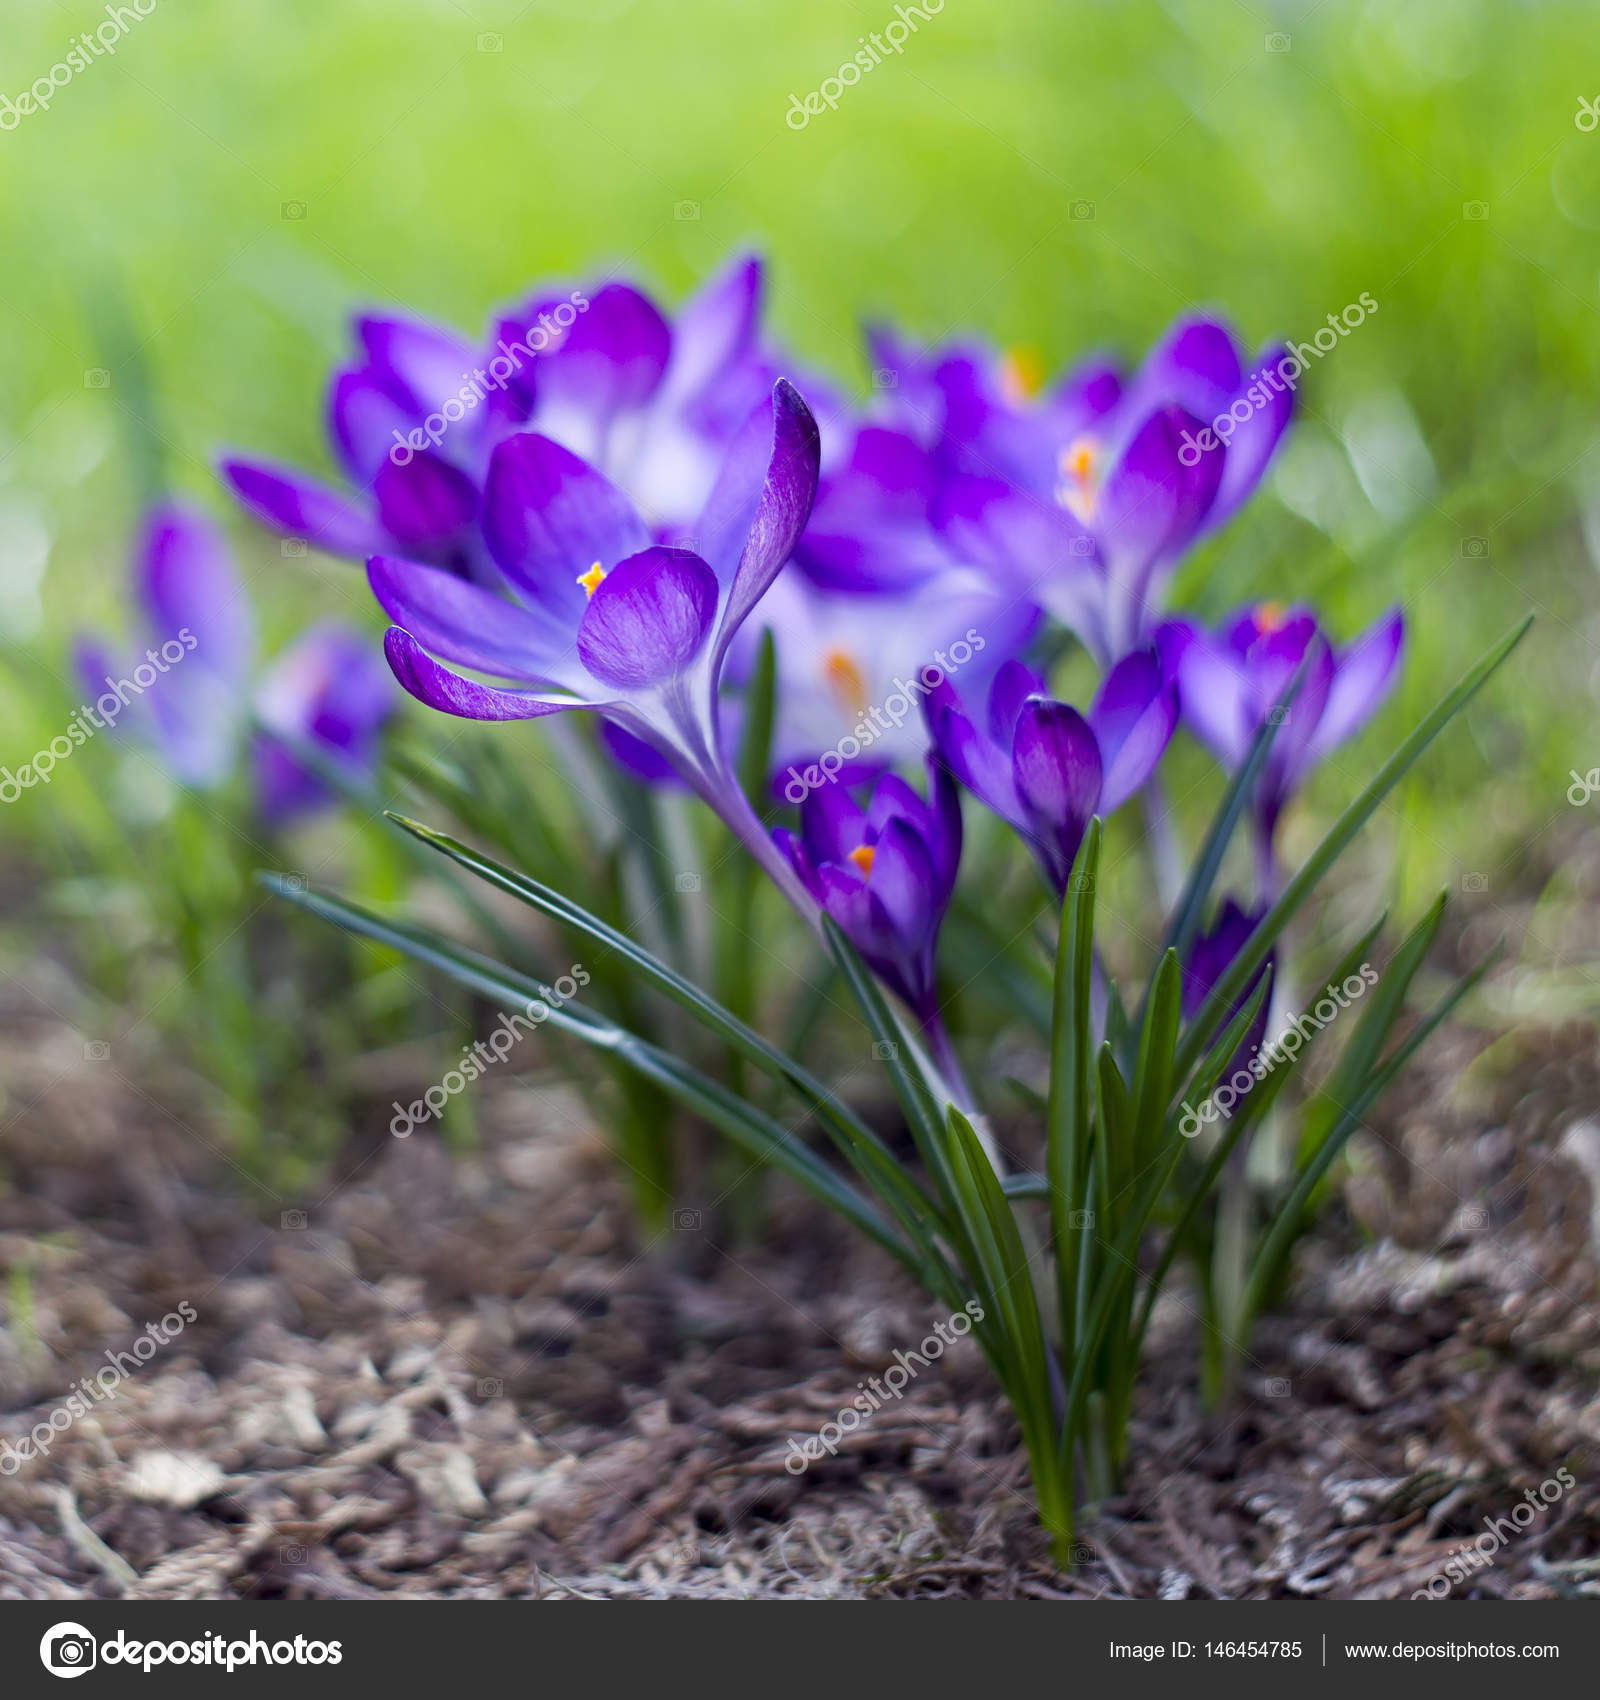 Crocus One Of The First Spring Flowers Stock Photo Mira